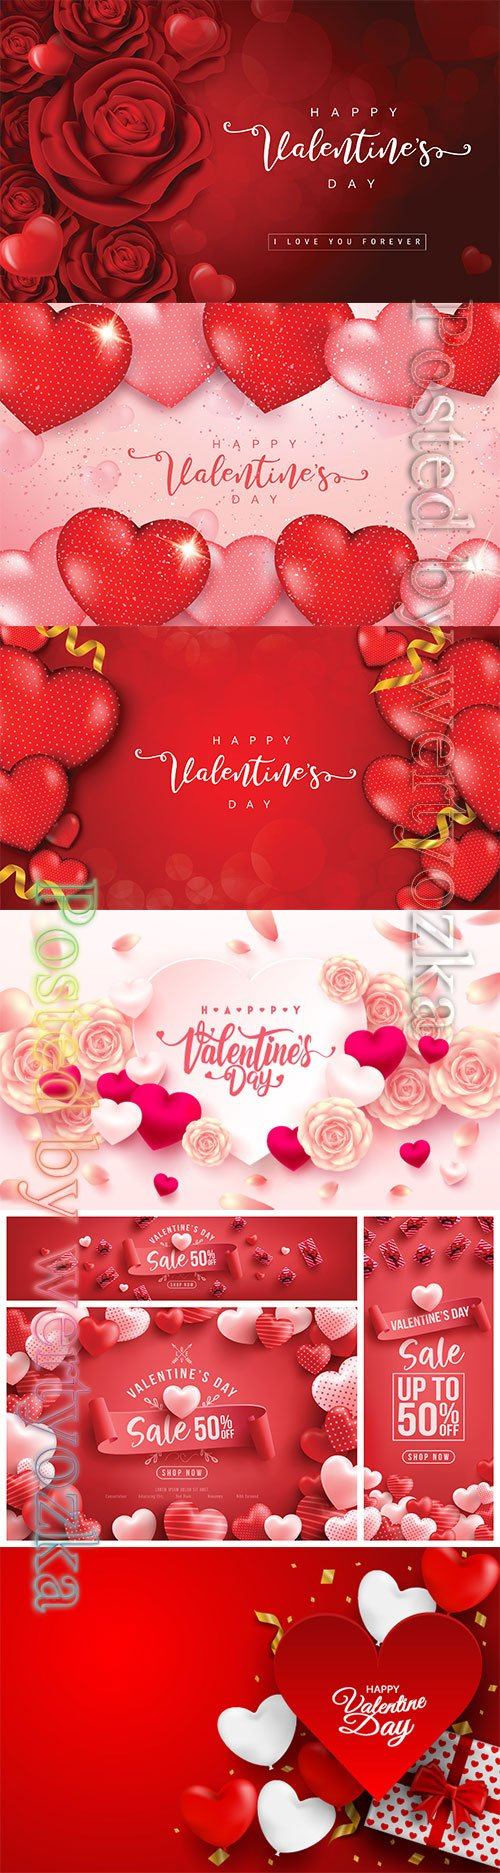 Background for Love and Valentine's day